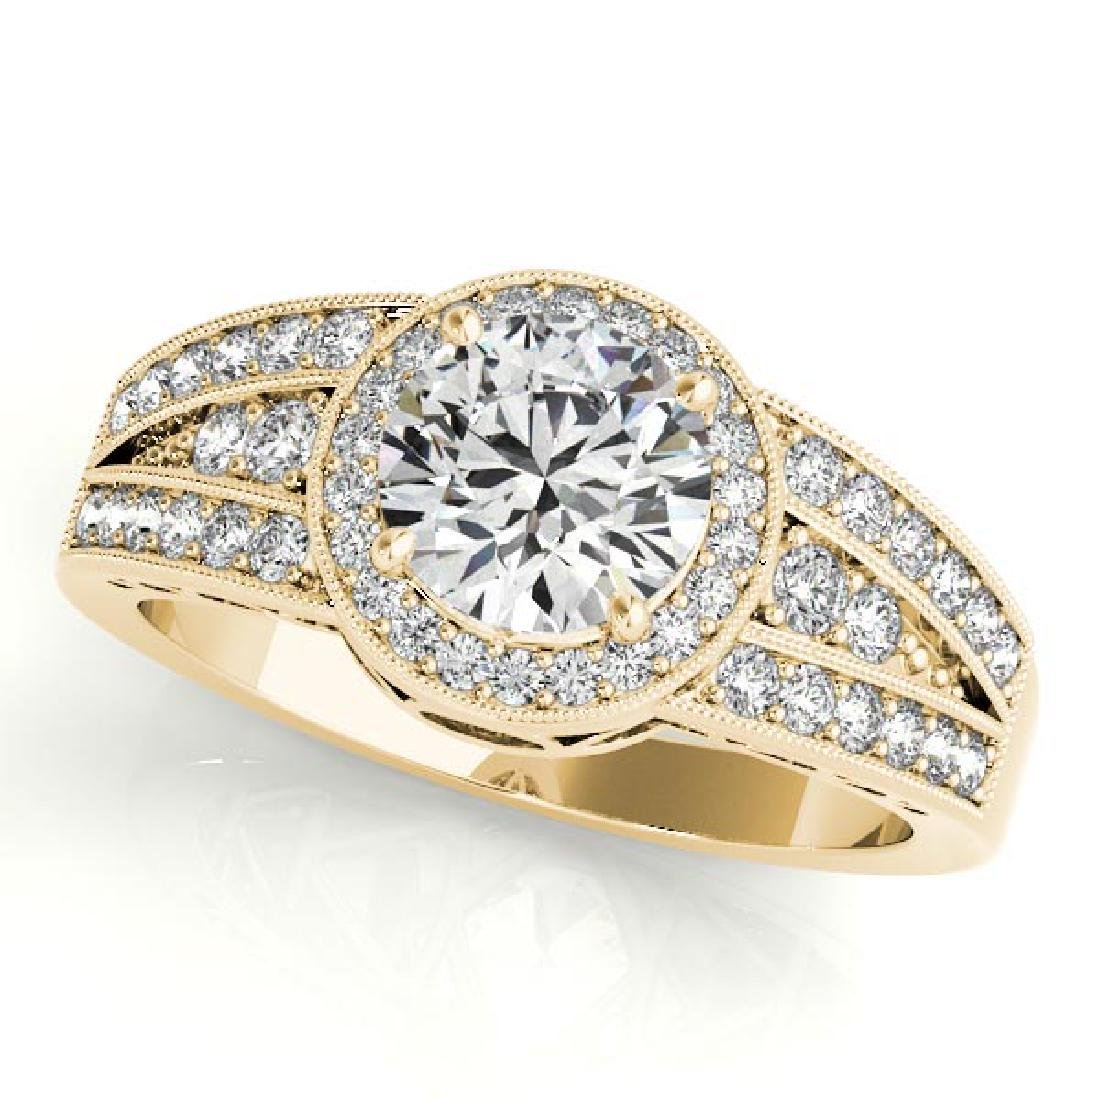 CERTIFIED 18K YELLOW GOLD .92 CT G-H/VS-SI1 DIAMOND HAL